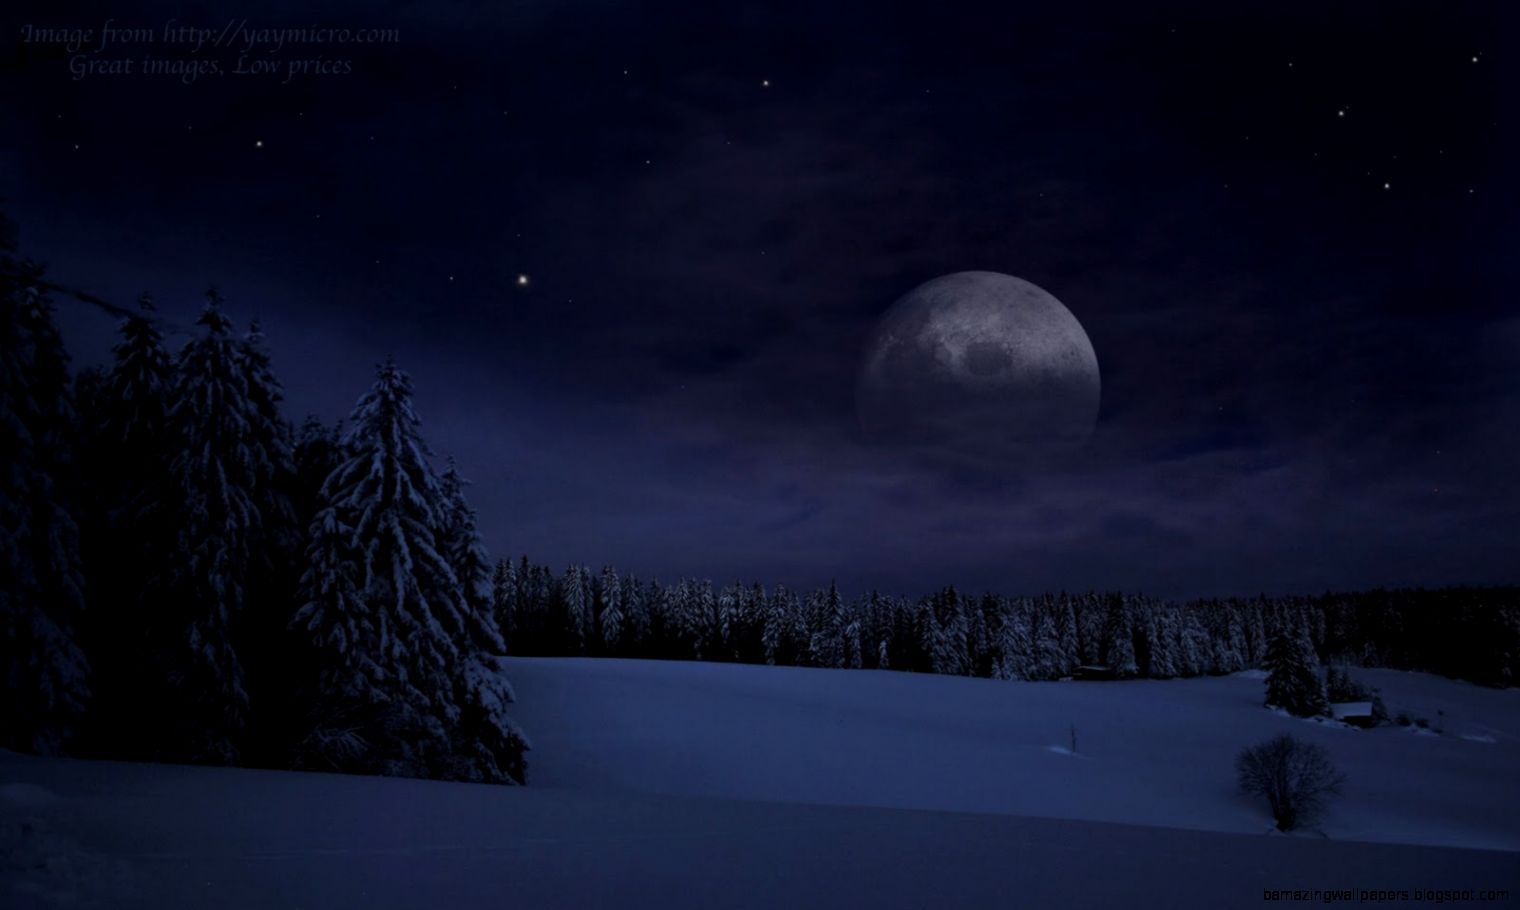 Wallpapers Snow Lamp Tracking Moonlight On The Water 1600x1000